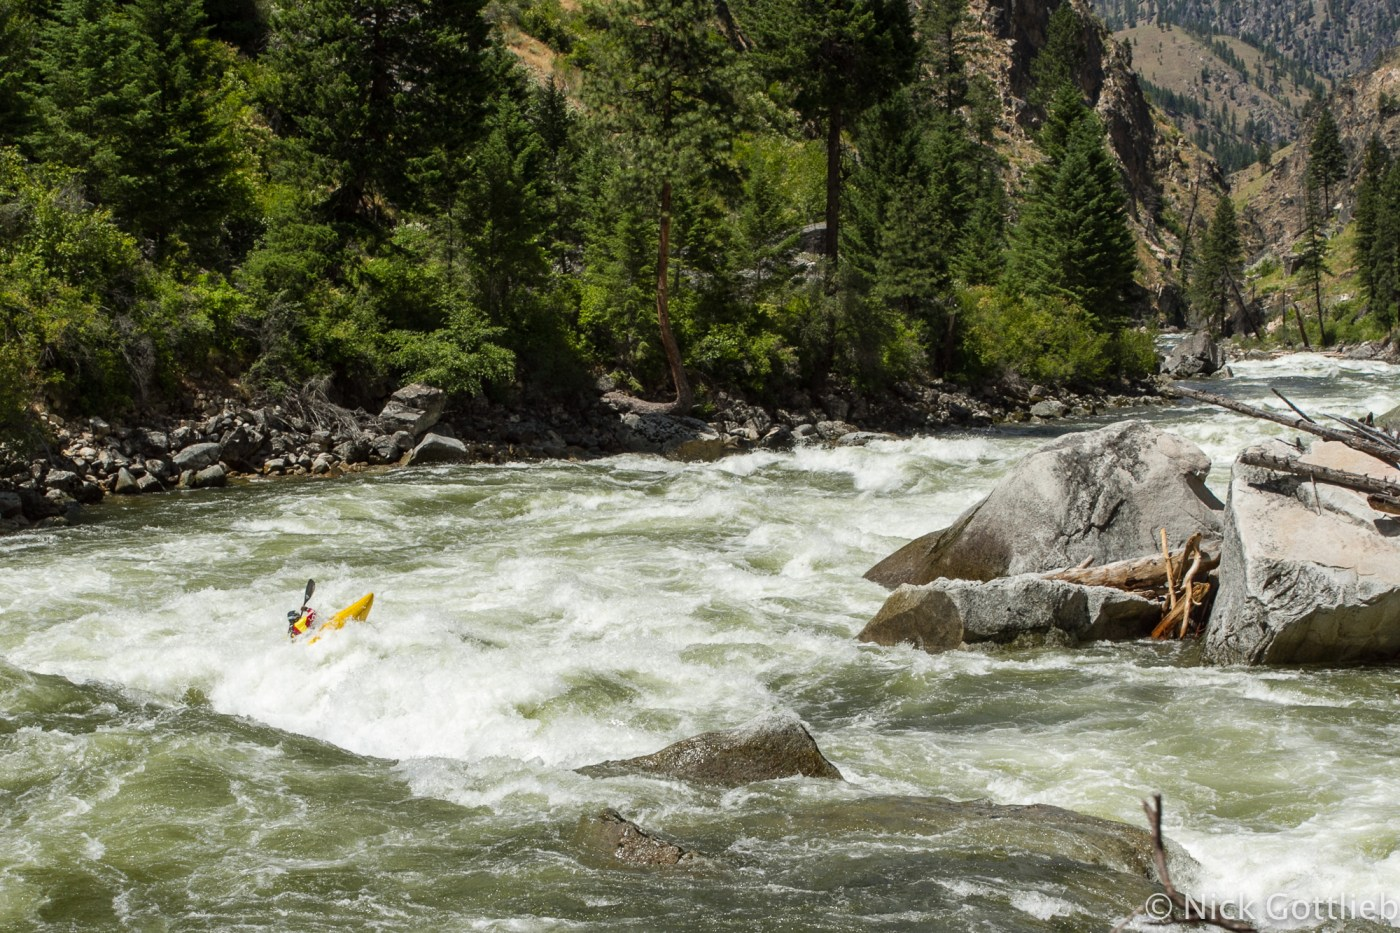 You can only run a rapid blind once...Egor Voskoboynikov paddling through the meat of the second part of Fall Creek Rapid.